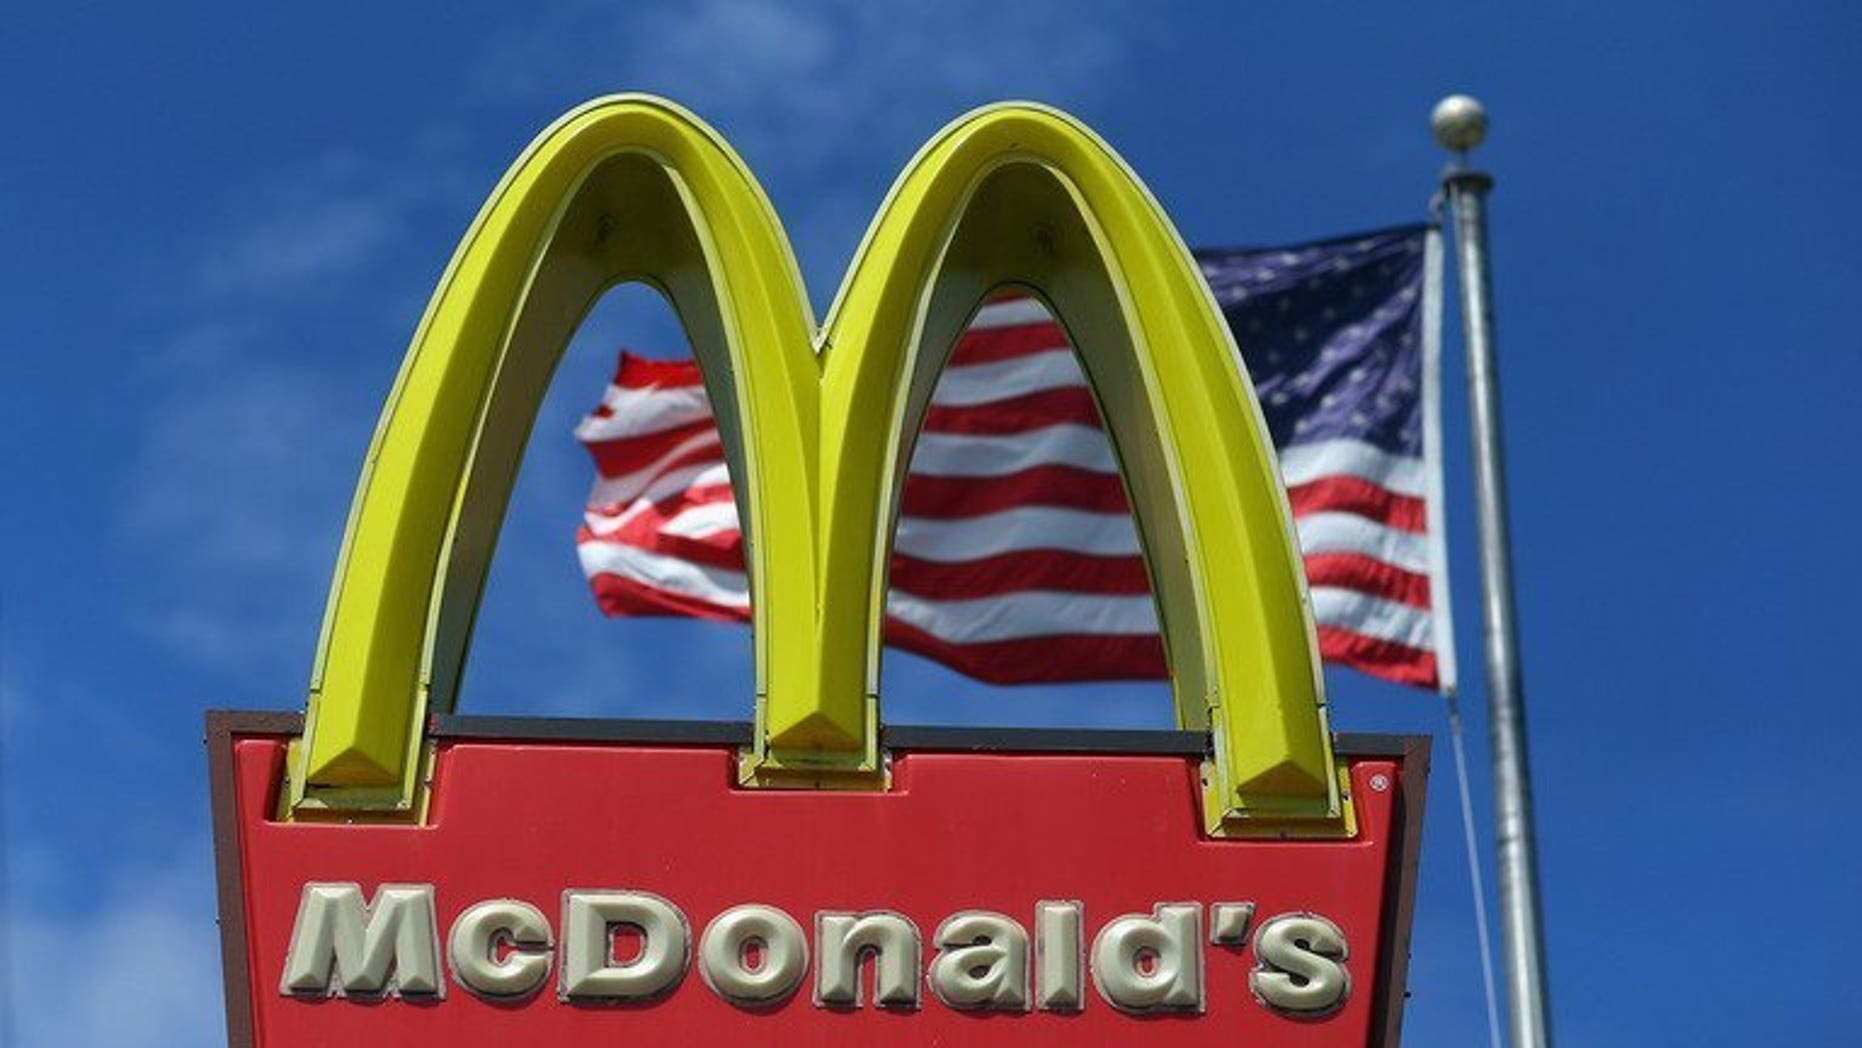 A sign for a McDonald's restaurant pictured in front of an American flag in Miami, Florida on July 23, 2012. McDonald's said Tuesday it would launch its first restaurant in communist Vietnam next year after granting a franchise to the son-in-law of Prime Minister Nguyen Tan Dung.